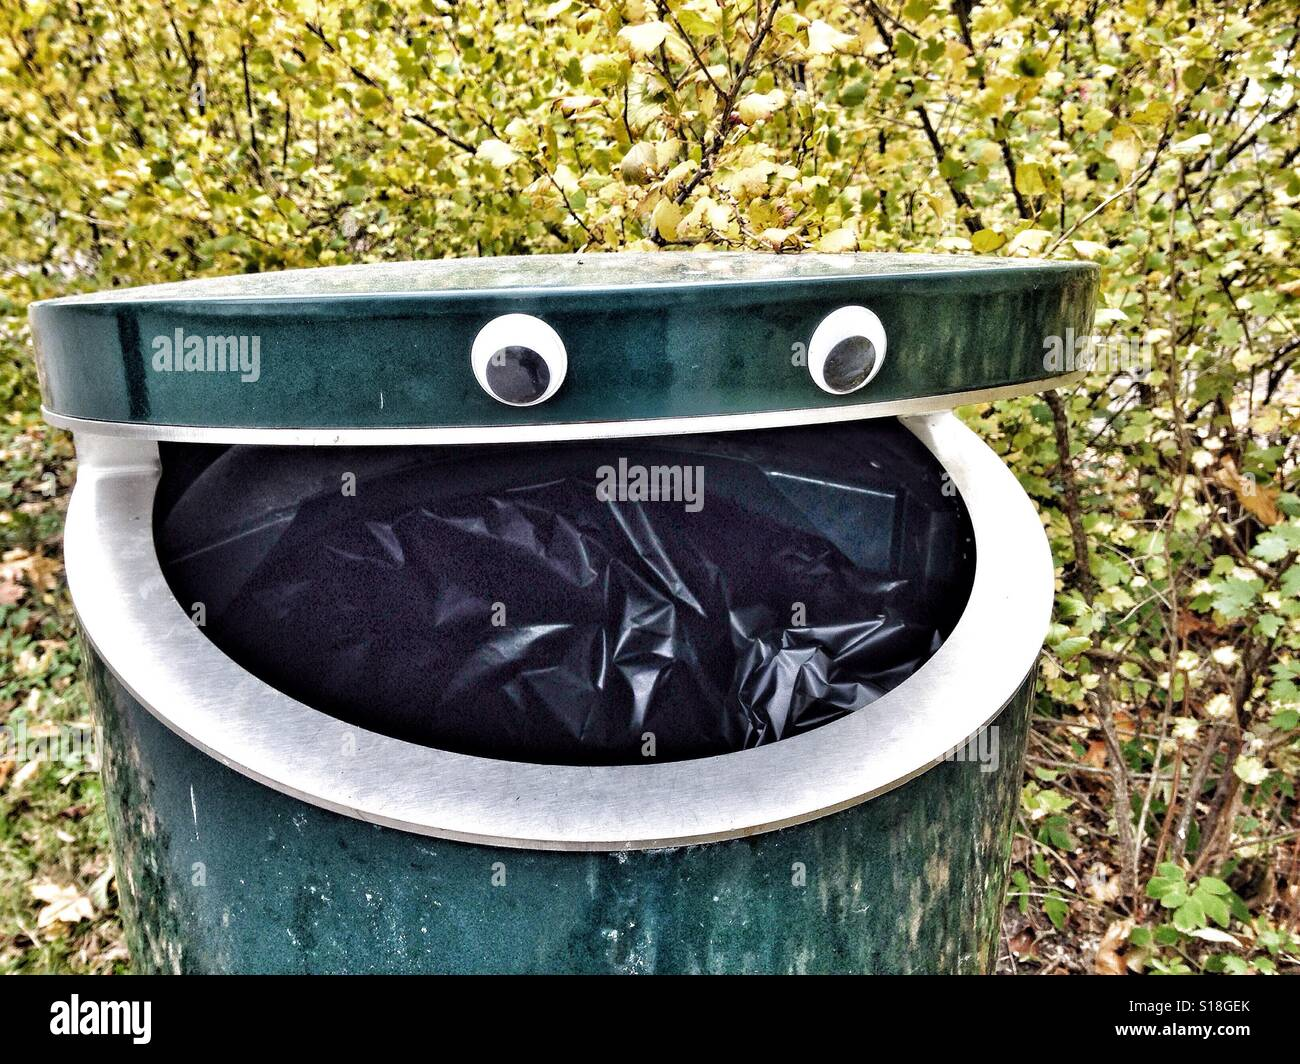 Funny Garbage Can High Resolution Stock Photography And Images Alamy